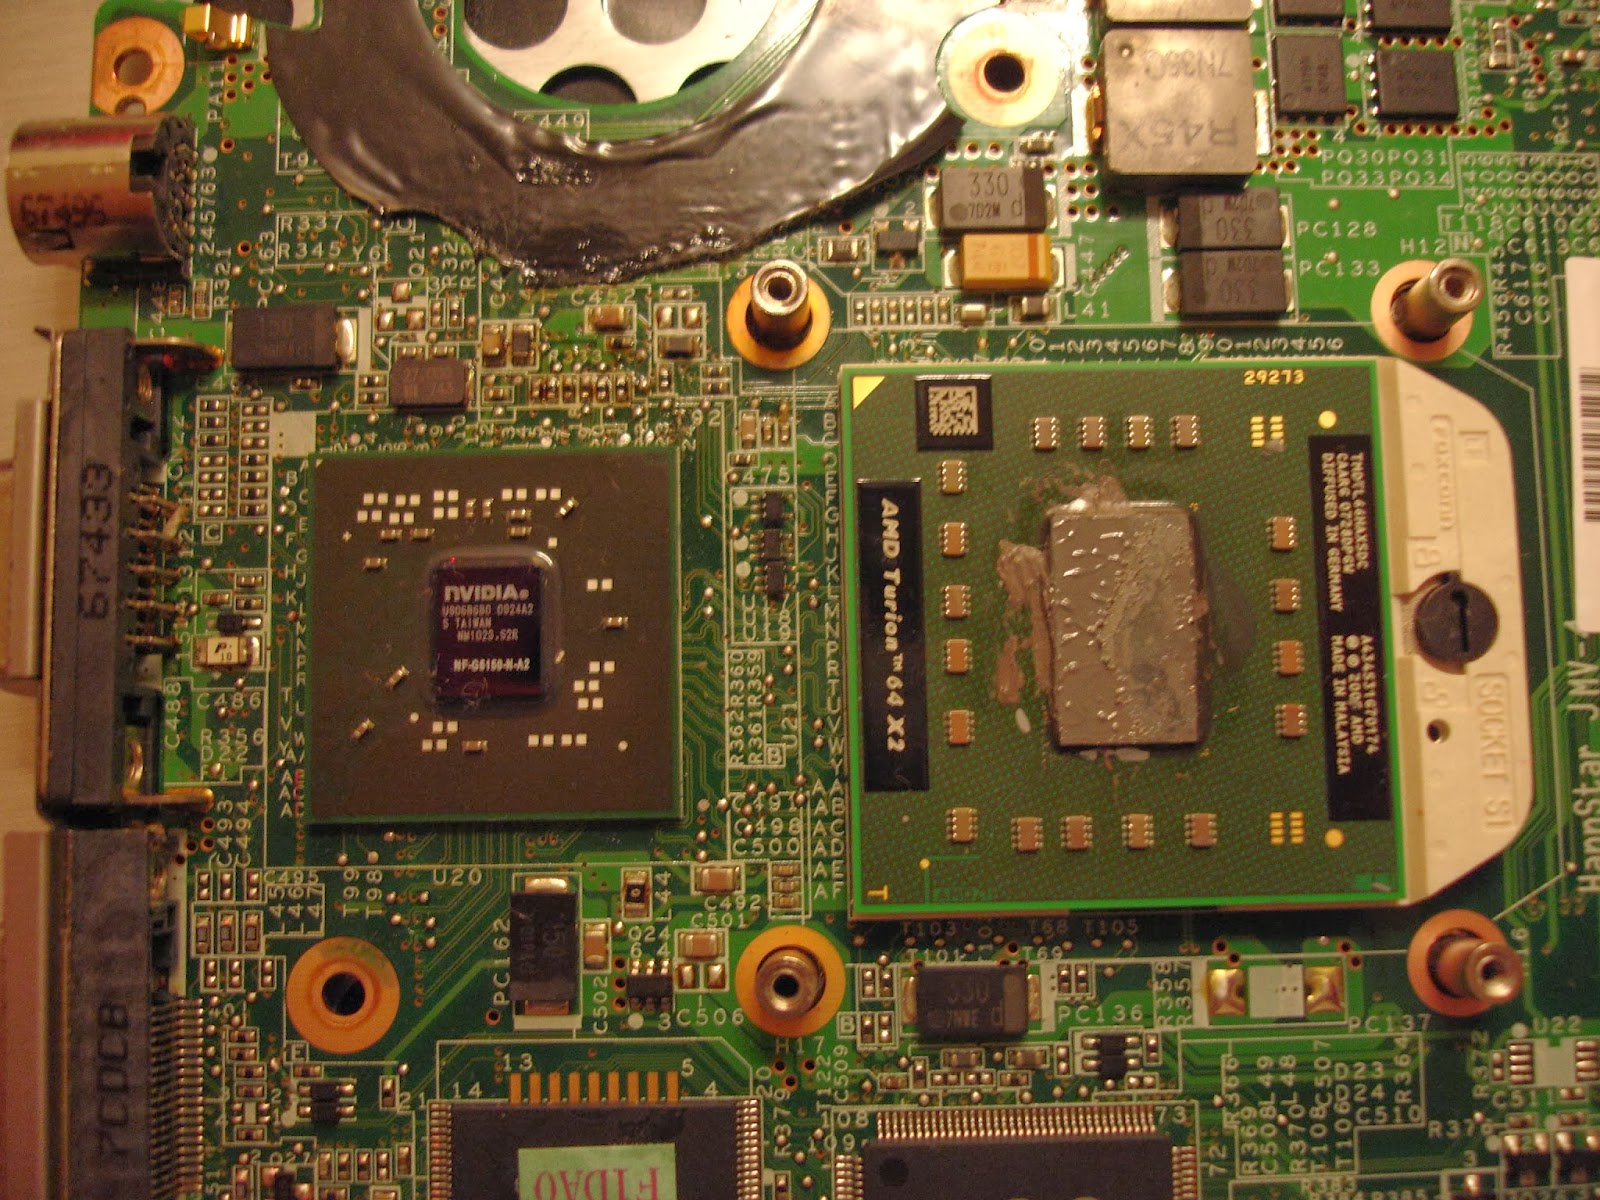 NEW DRIVERS: HP PAVILION TX1000 MOTHERBOARD